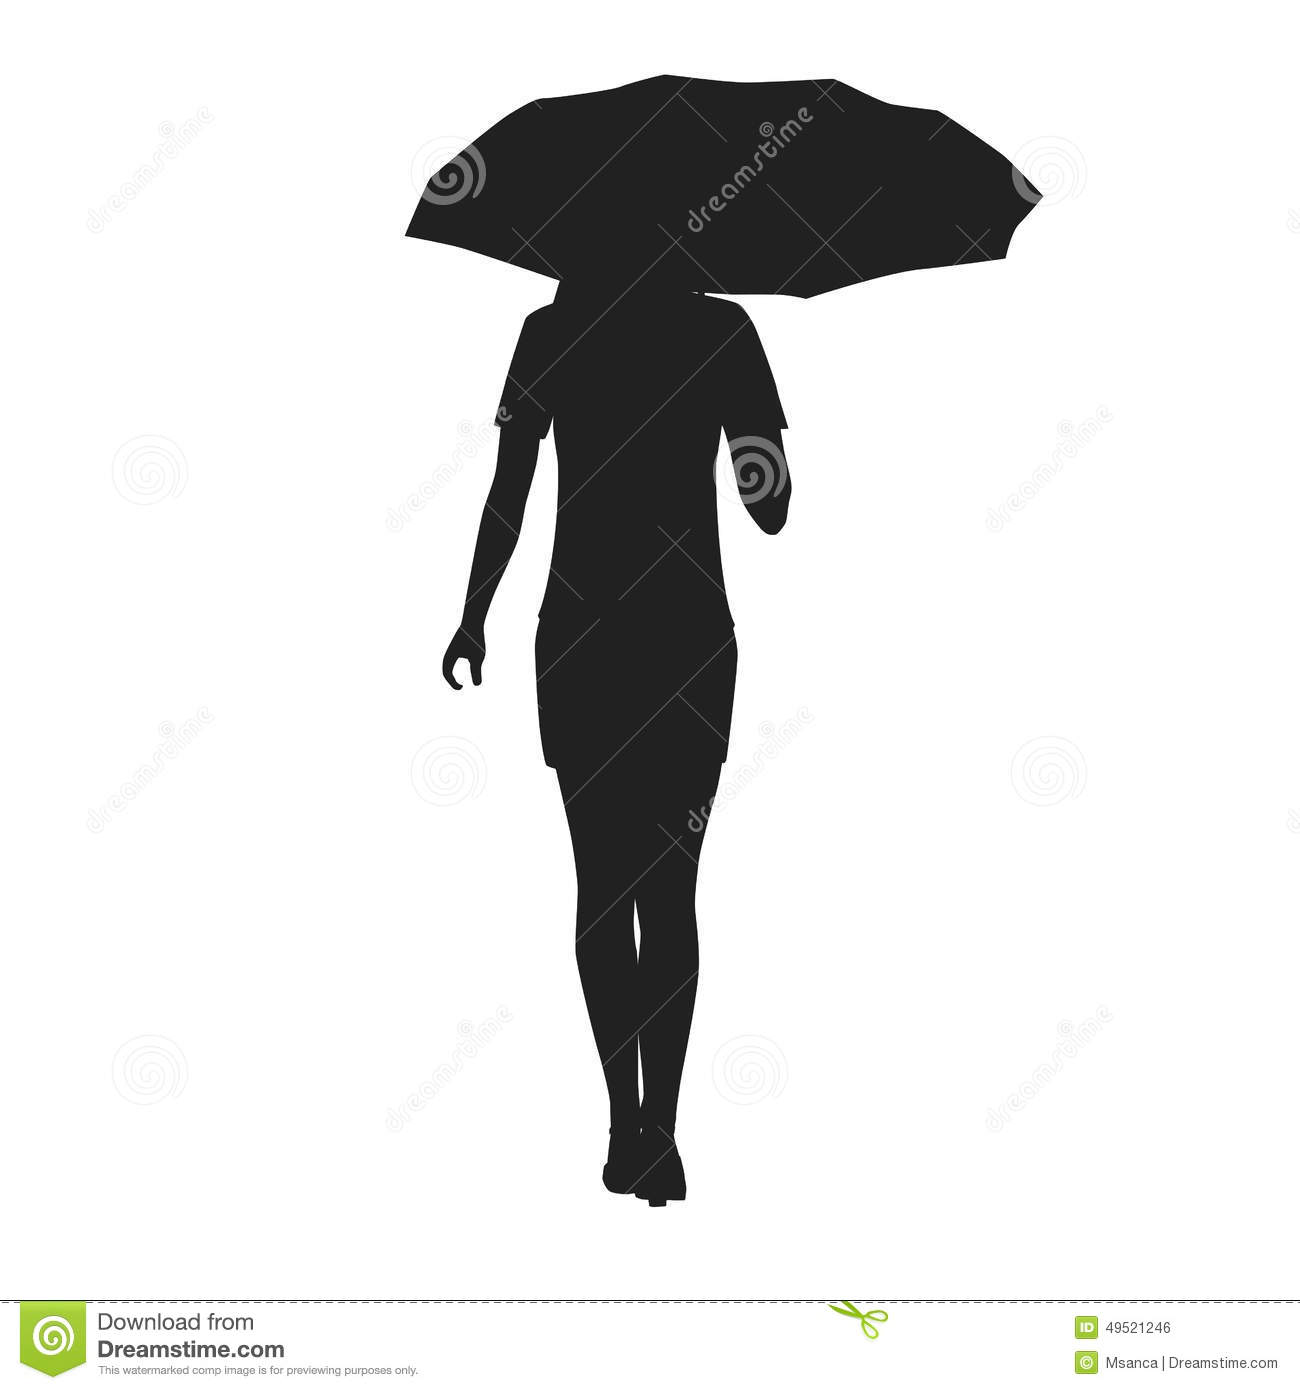 Silhouette Of A Woman With Umbrella Stock Vector - Image ...  Silhouette Of A...